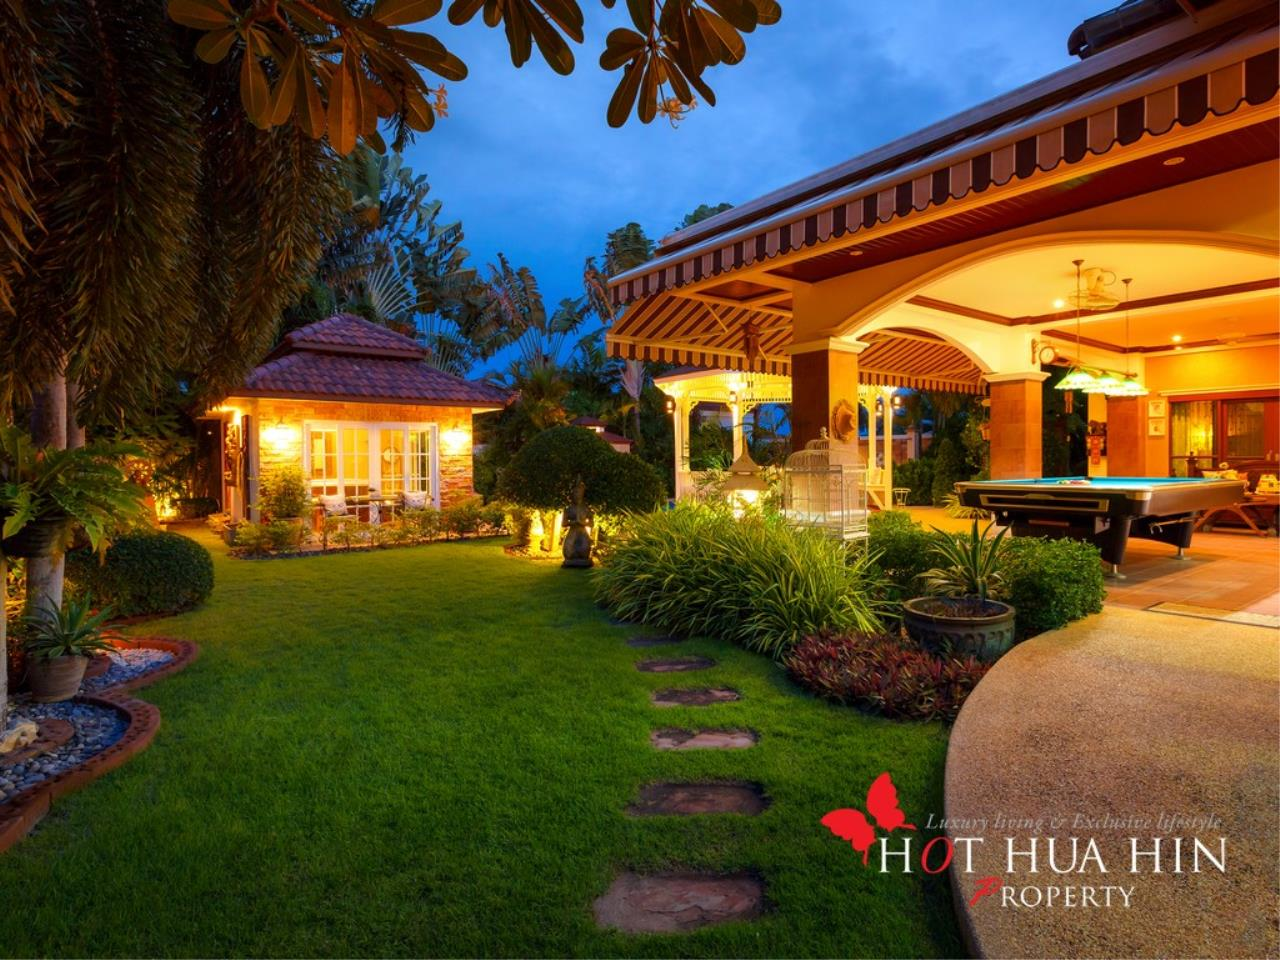 Hot Hua Hin Co. Ltd. Agency's Well Built Home With Stunning Gardens And Two Full Kitchens 40